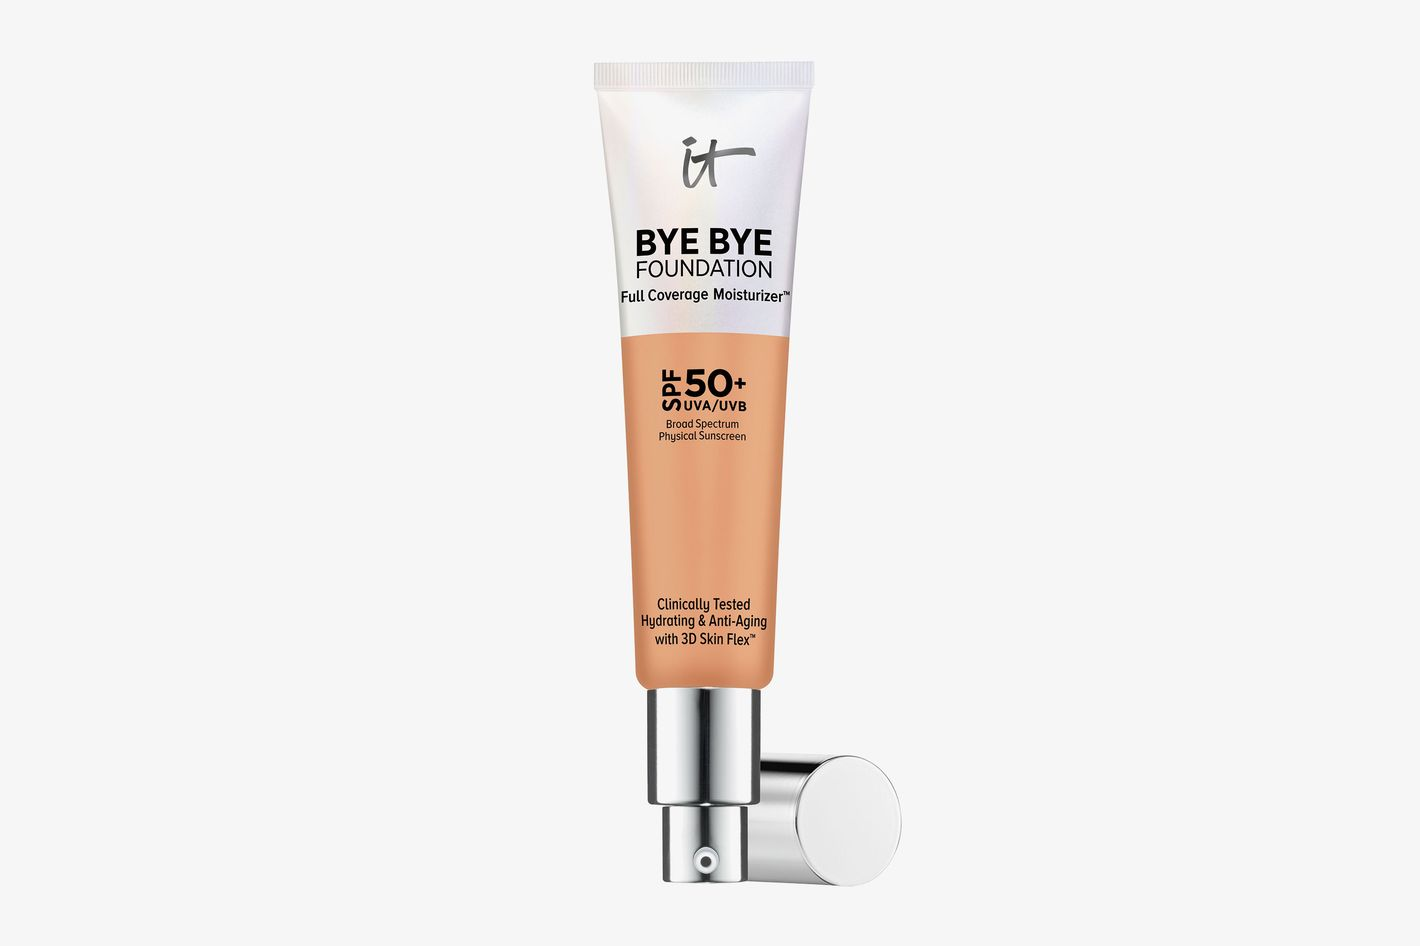 Bye Bye Foundation Full Coverage Moisturizer with SPF 50+ Neutral Tan